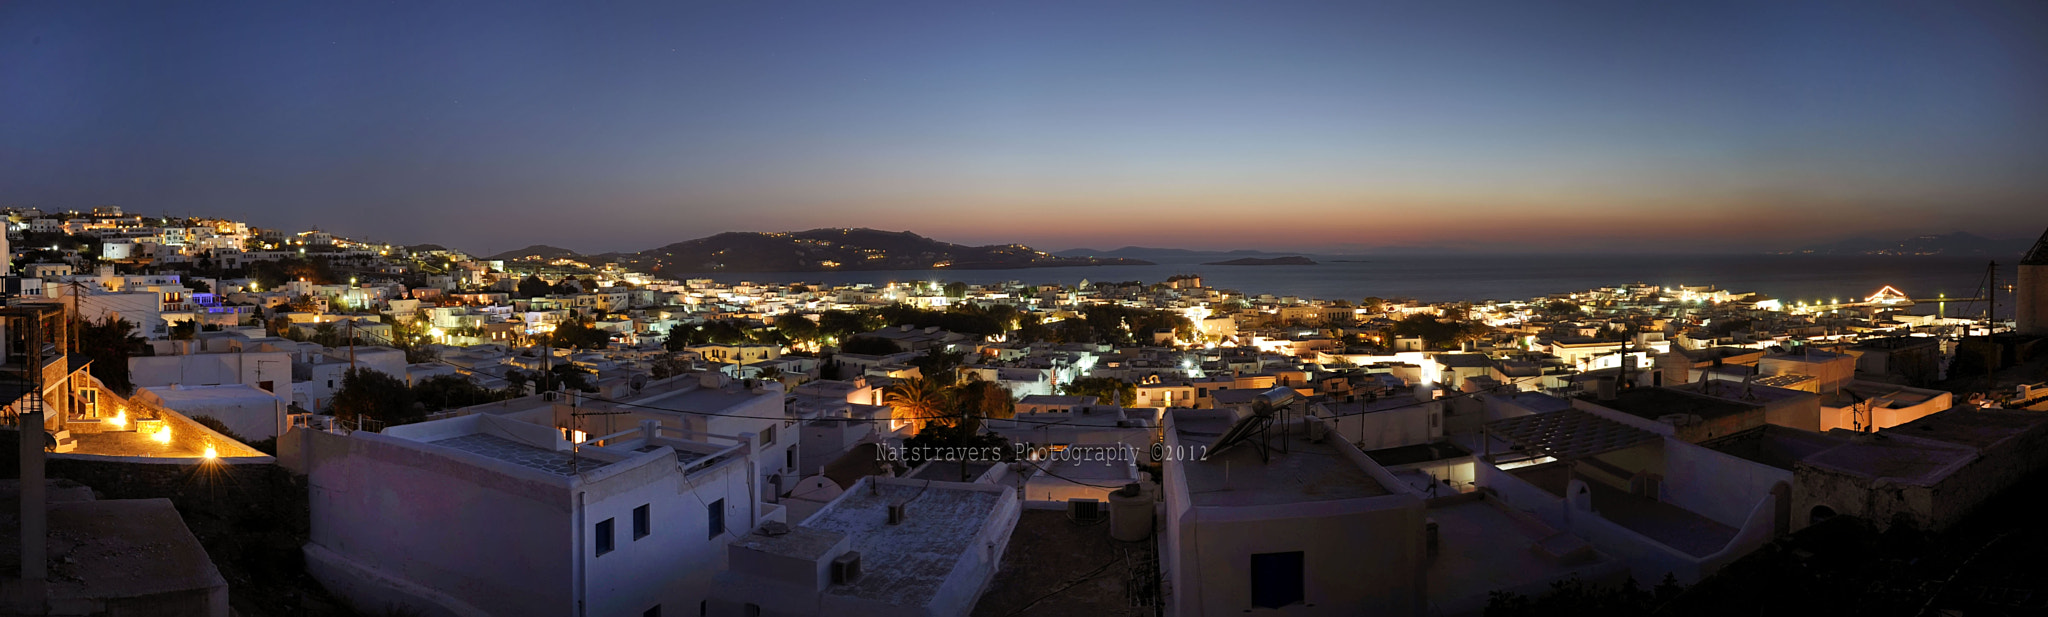 Photograph Panorama city of Mykonos by Nathalie Stravers on 500px